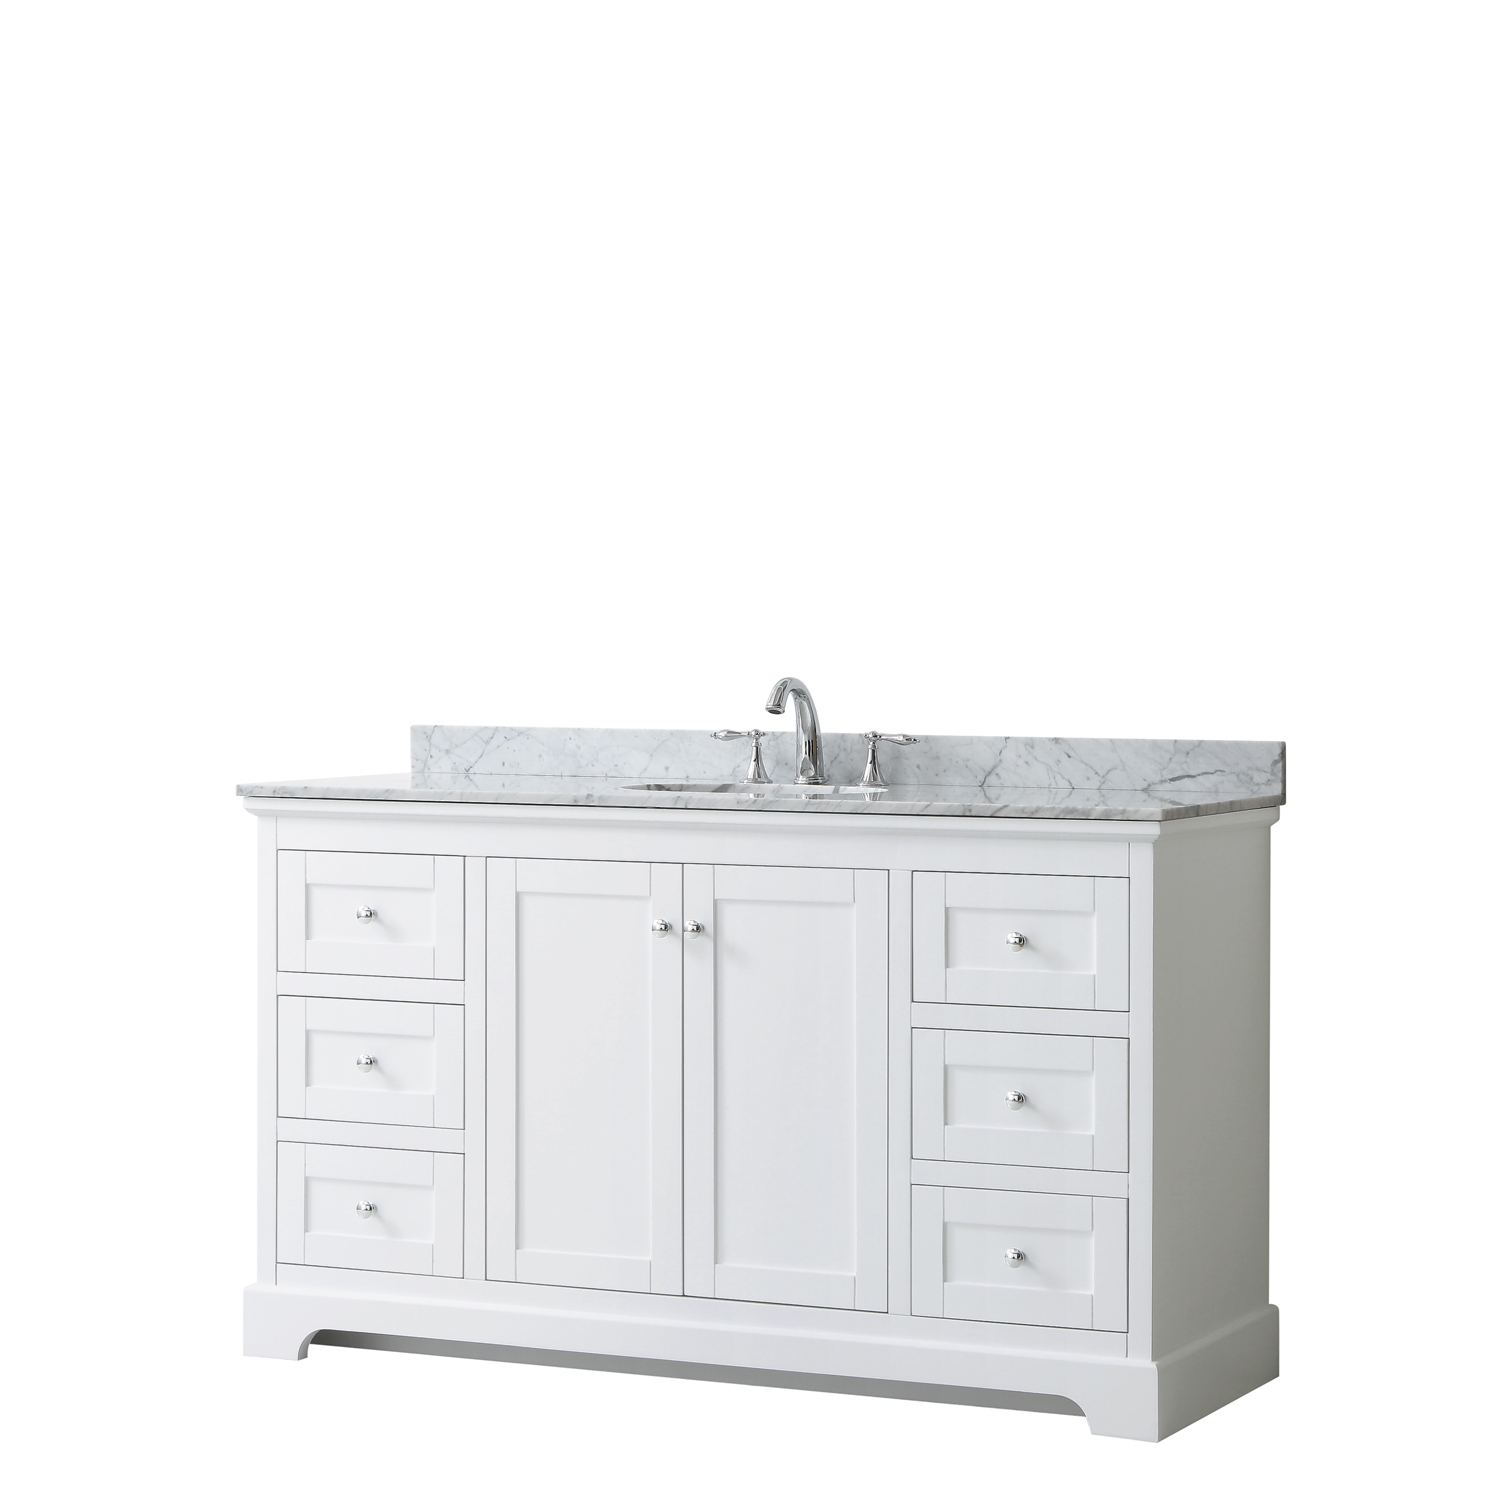 "60"" Single Bathroom Vanity in White, No Countertop, No Sink, and No Mirror"